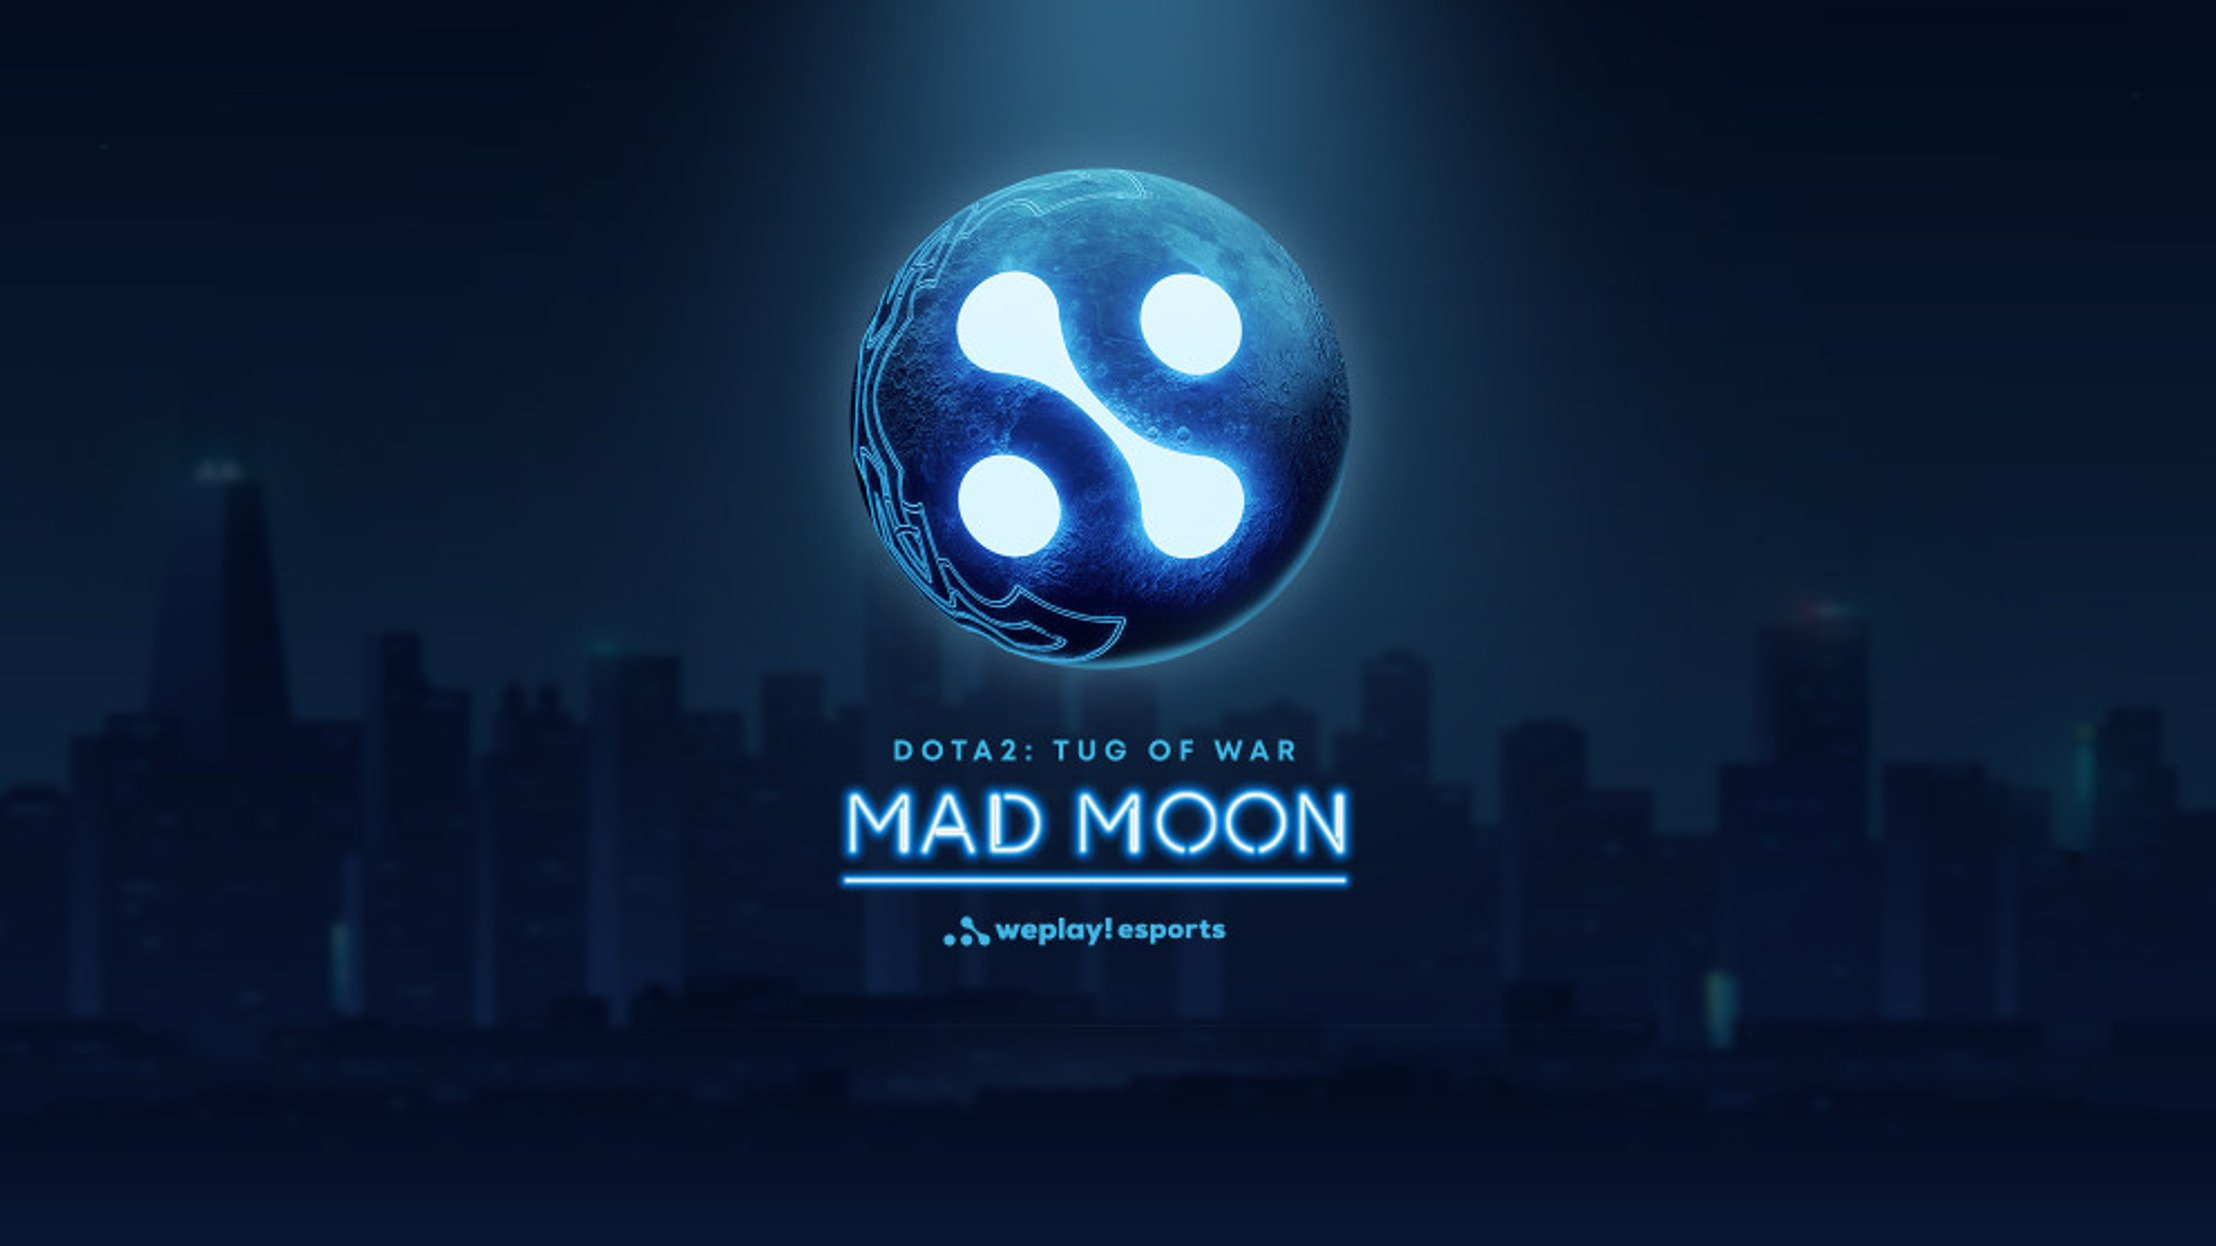 WePlay! to hold Tug of War: Mad Moon LAN event in its new esports arena in February 2020